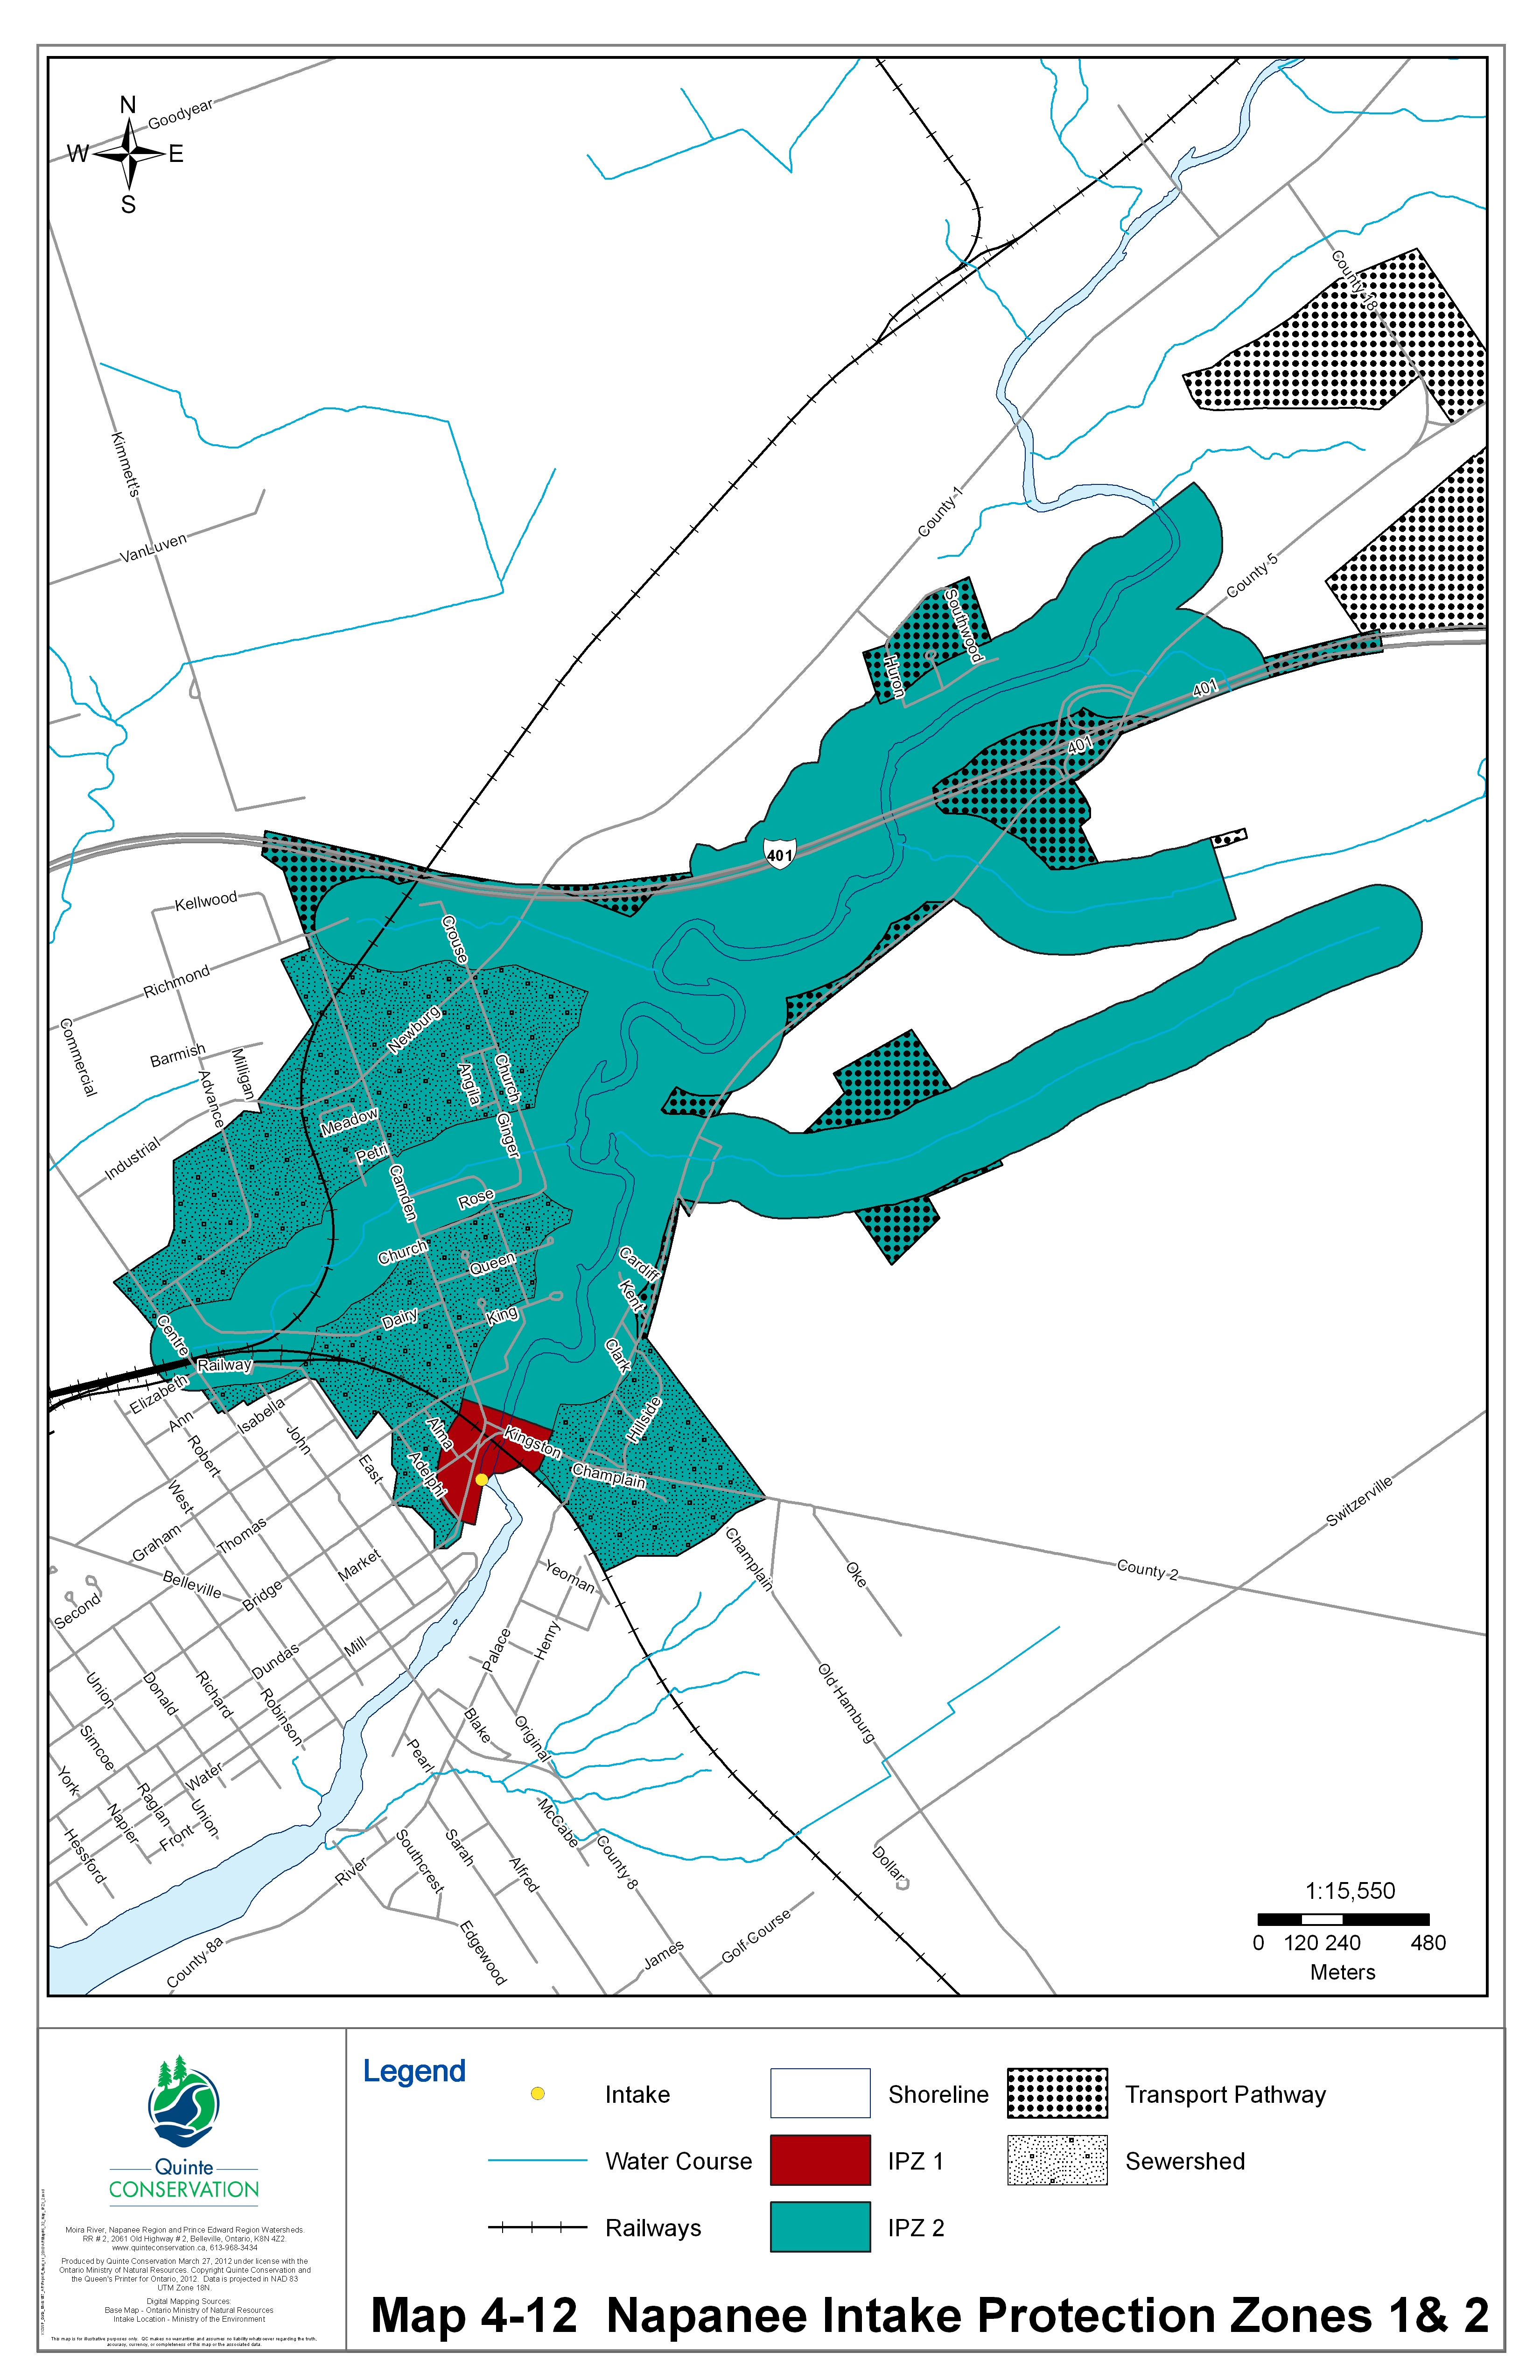 Drinking water systems map for Napanee